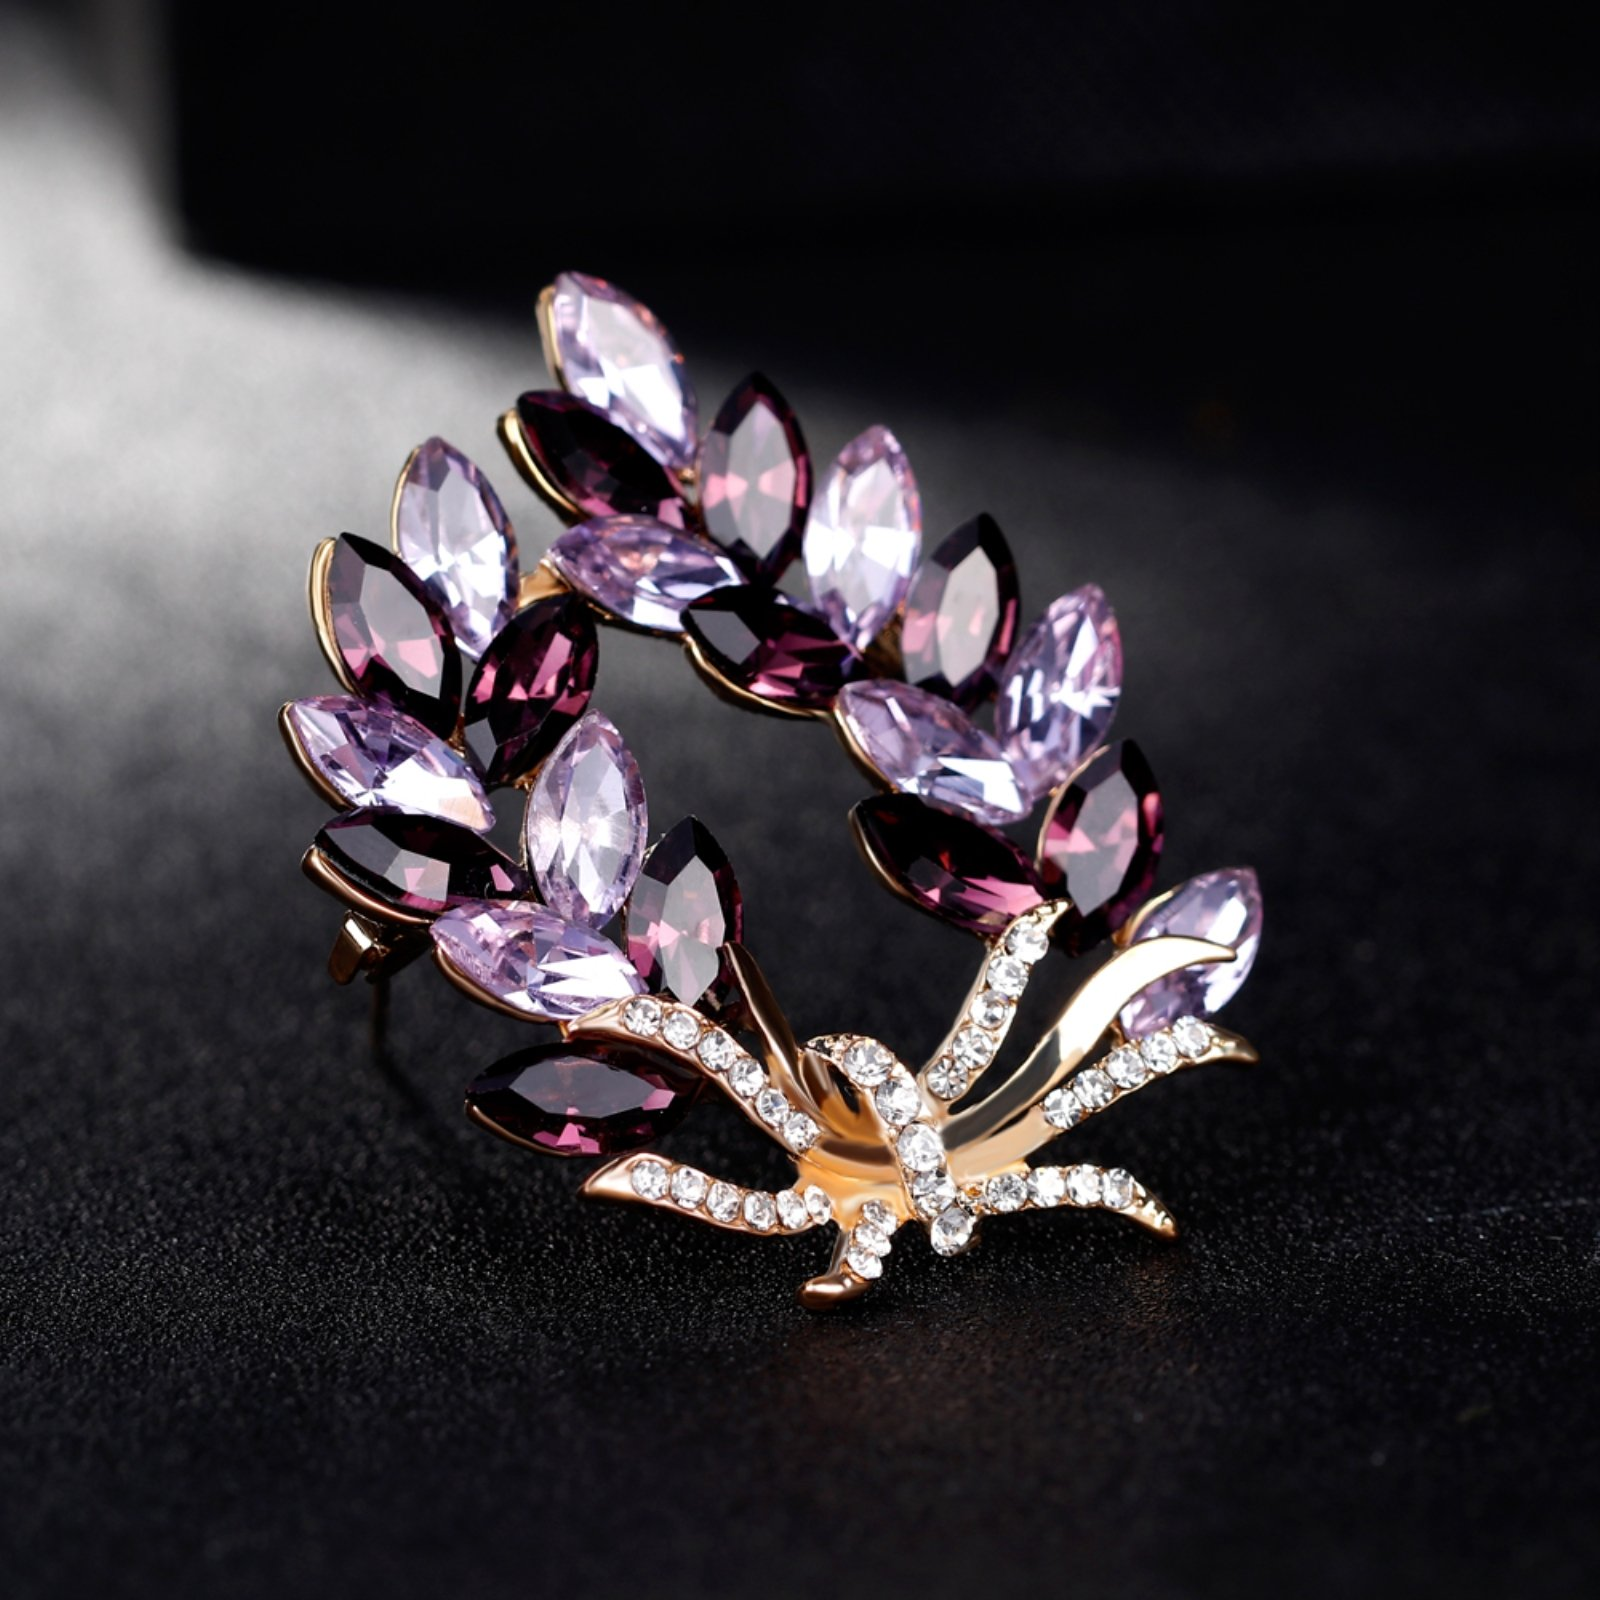 ptk12 Coat Accessories Purple Crystal Flower Casual Party Bouquets Rhinestone Brooch by ptk12 (Image #8)